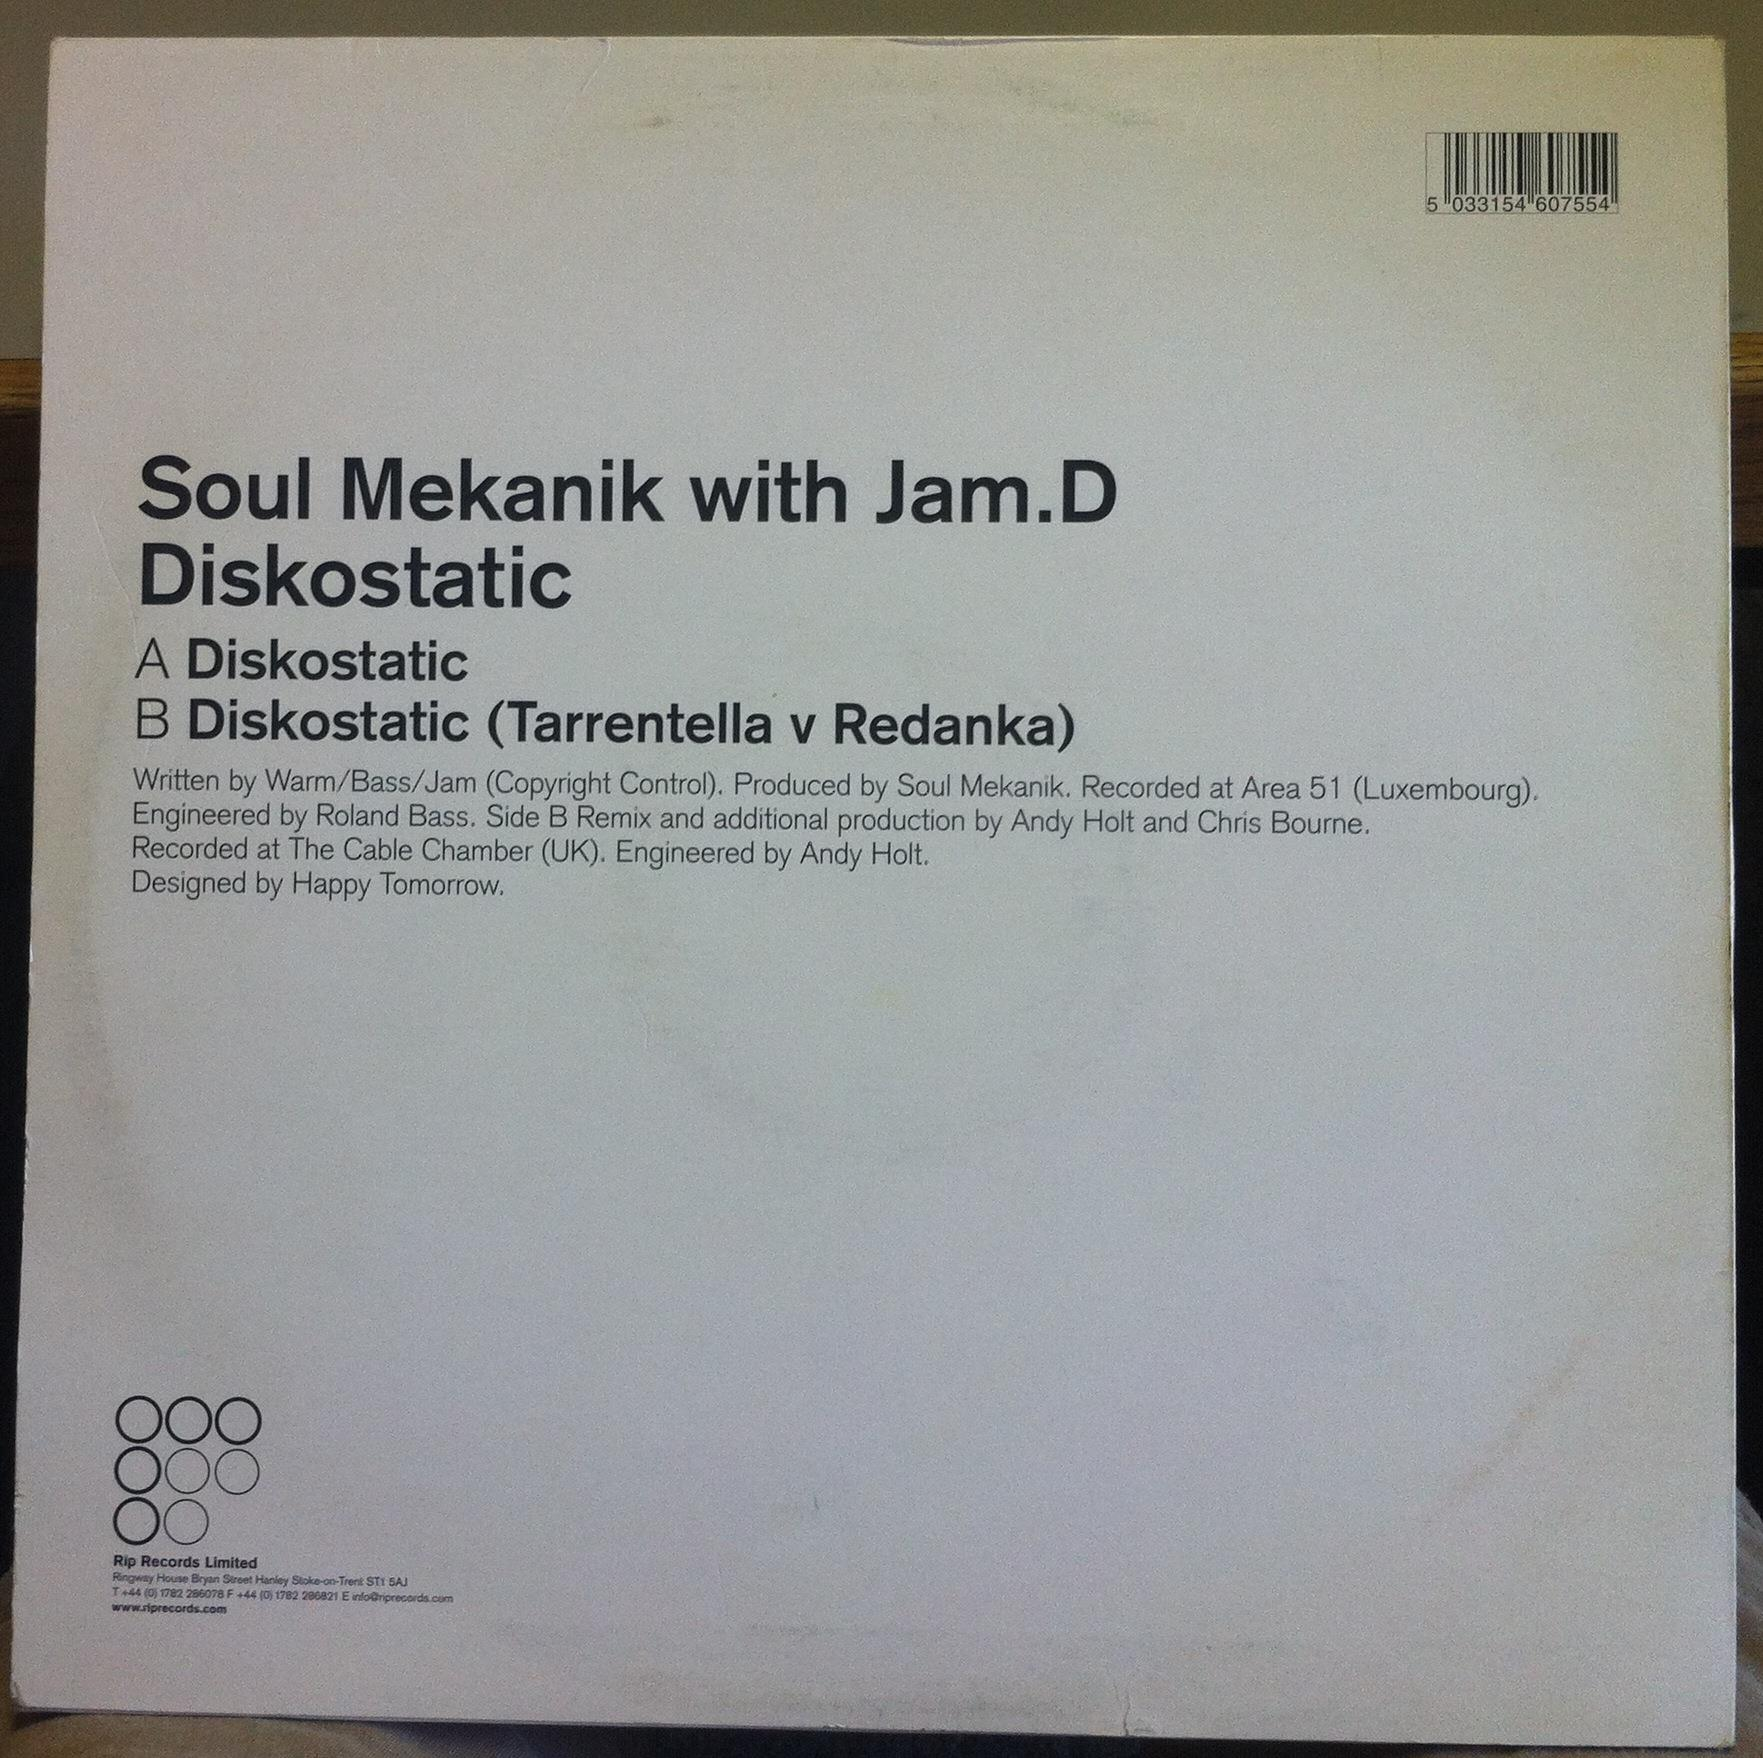 "Soul Mekanik with Jam.D - Soul Mekanik With Jam.d Diskostatic 12"" Vg+ Ript 002 Uk House 2000 Record (diskostatic)"